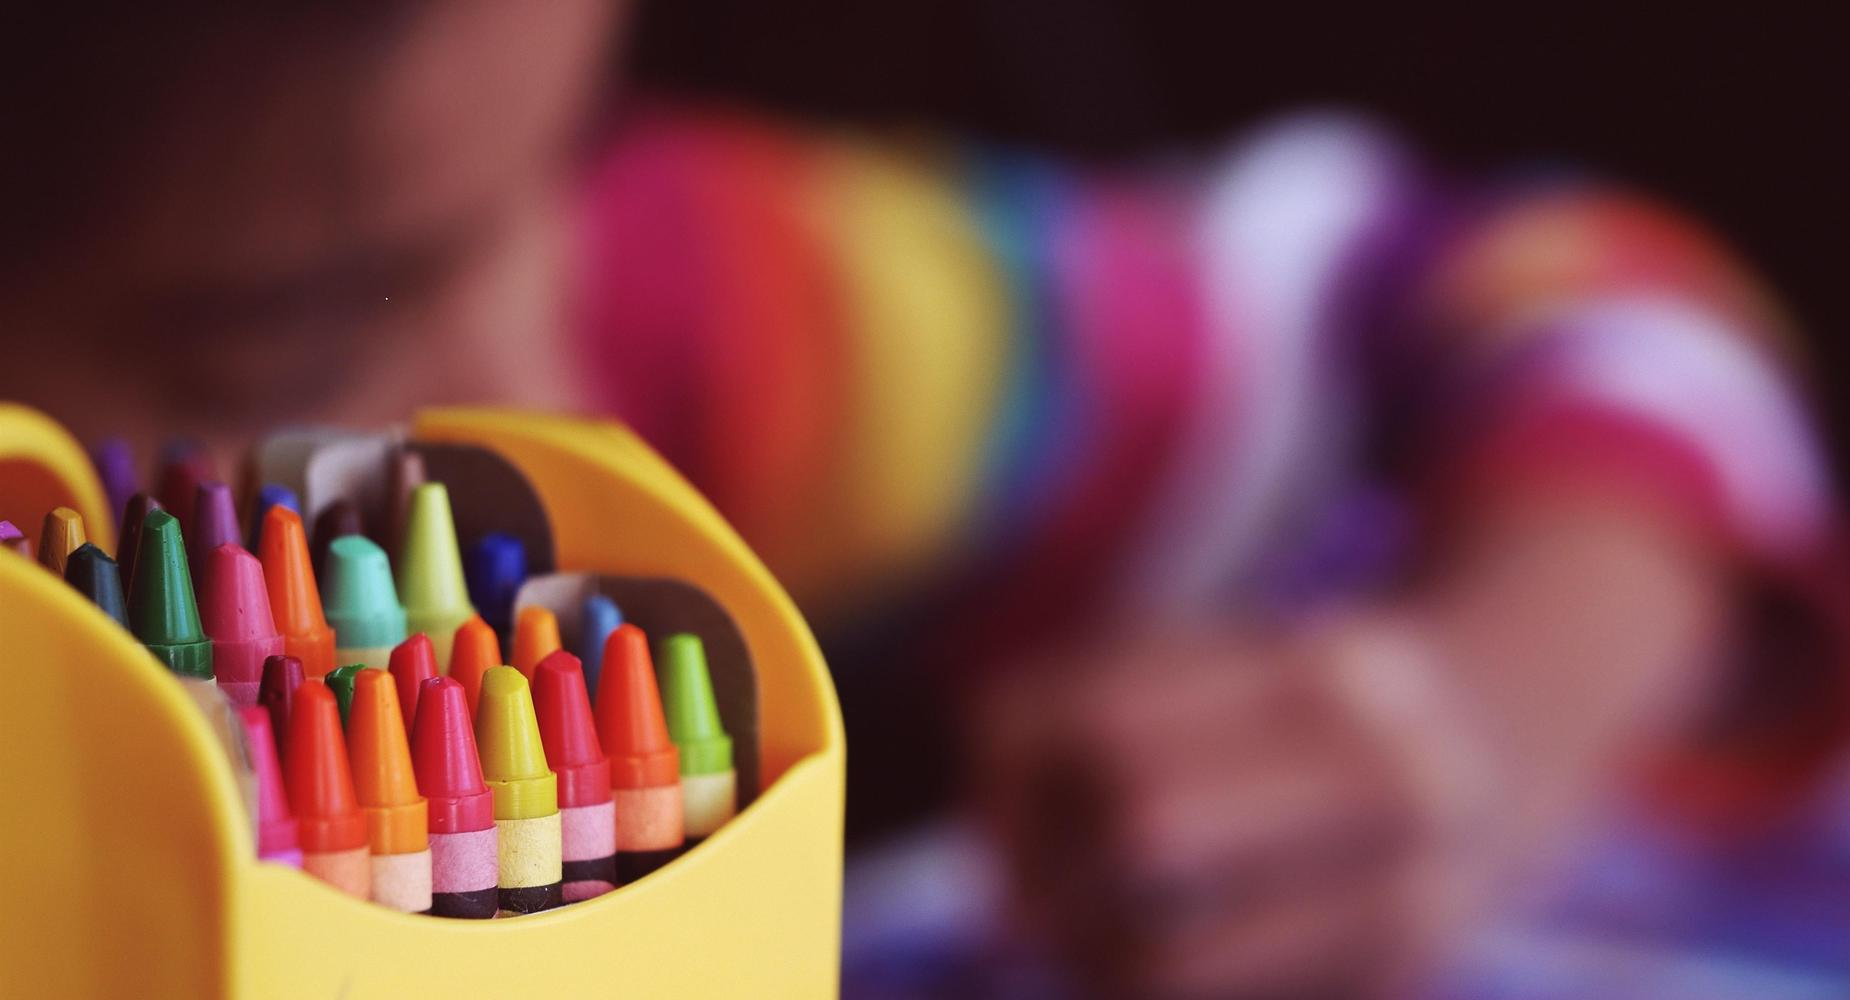 a box of crayons is in focus while a girl, out of focus, colors in the background.